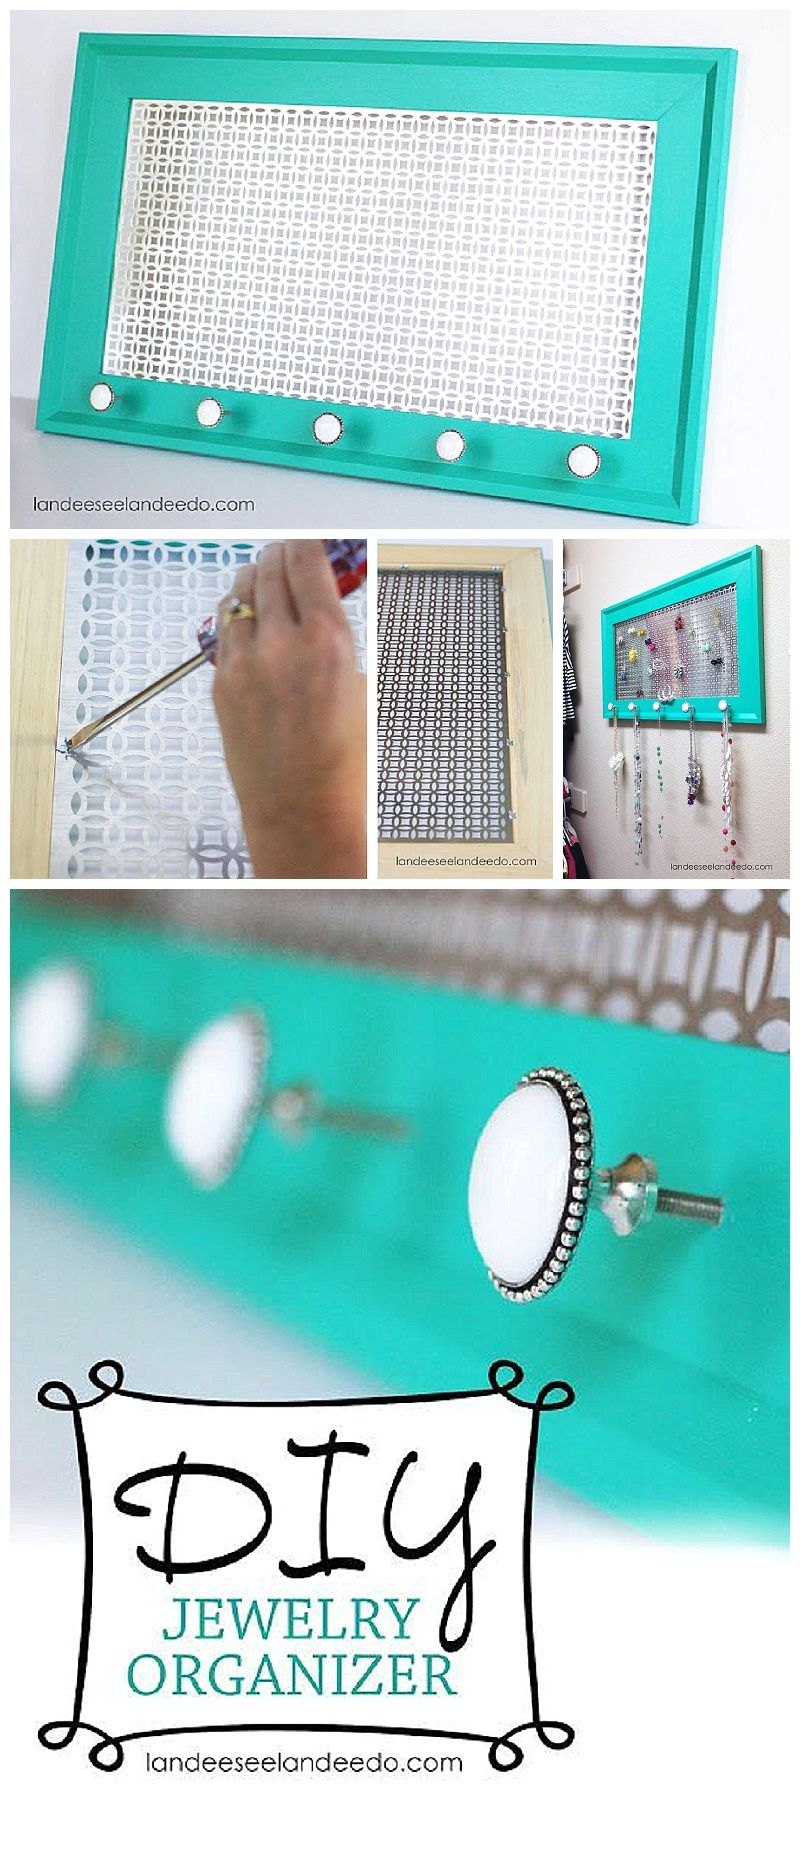 DIY Jewelry Organizer Diy jewelry organizer Tutorials and